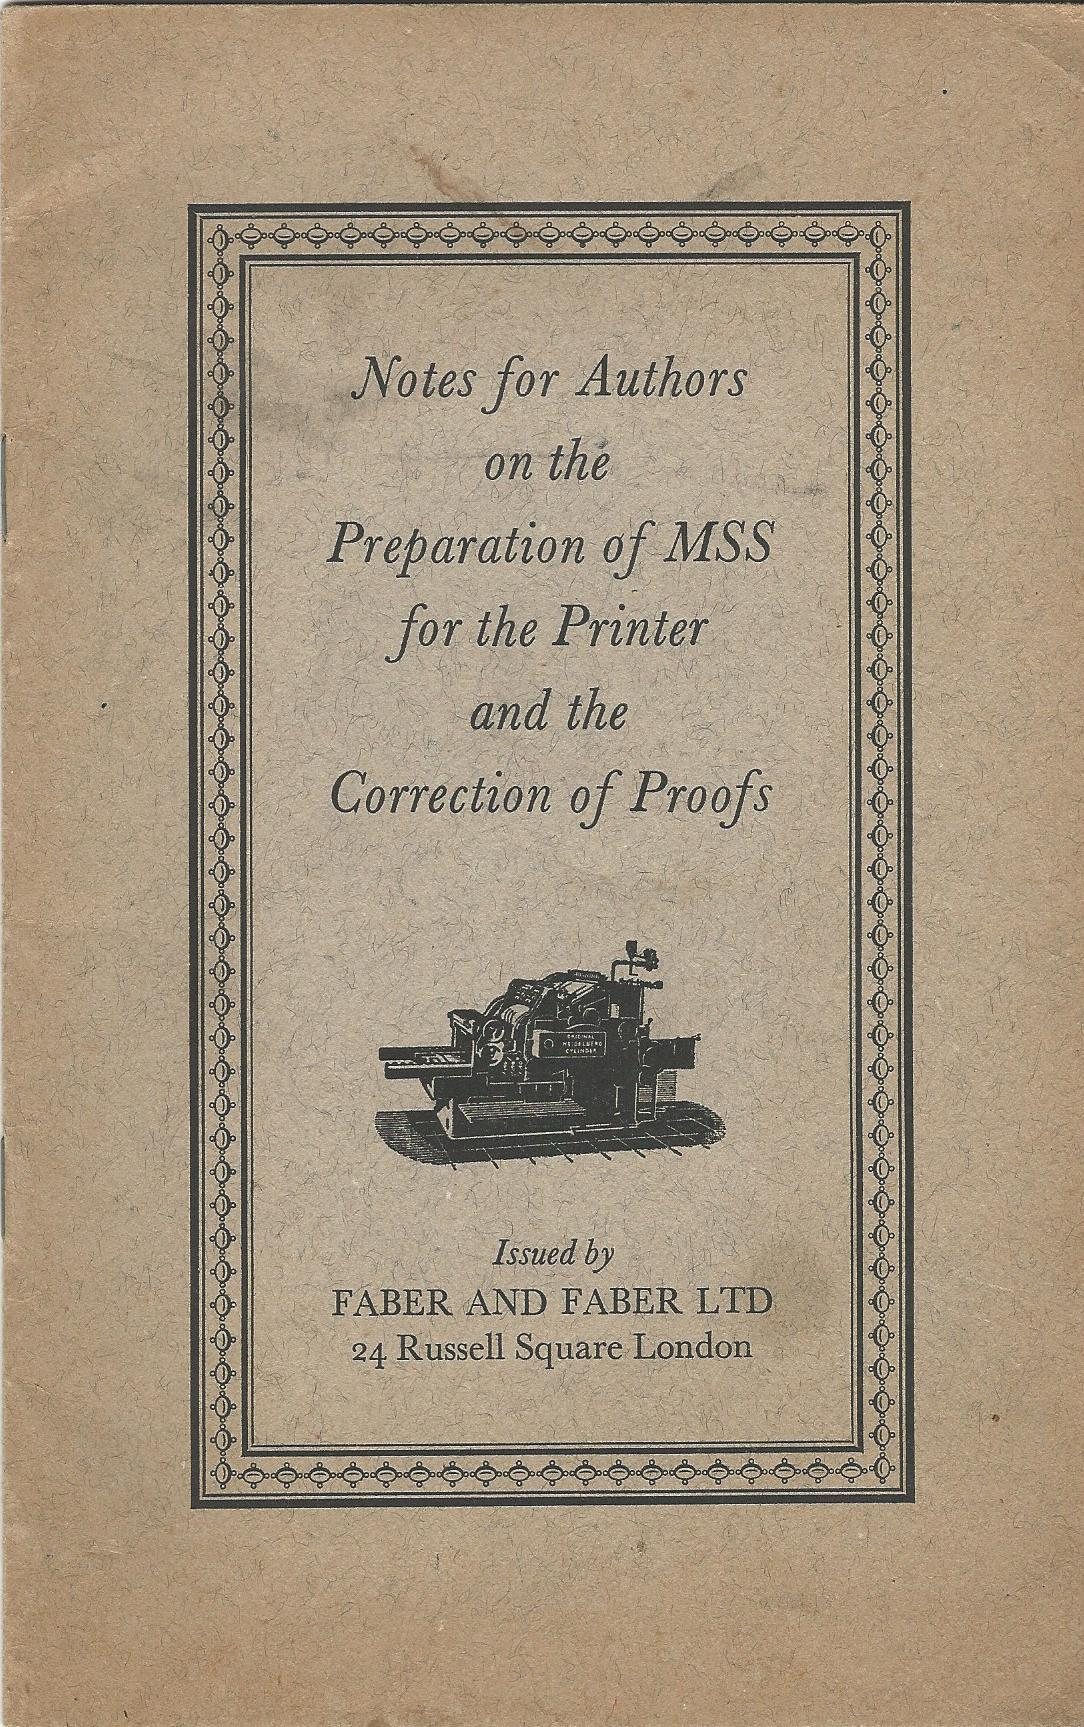 Image for Notes for Authors on the Preparation of MSS for the Printer and the Correction of Proofs.